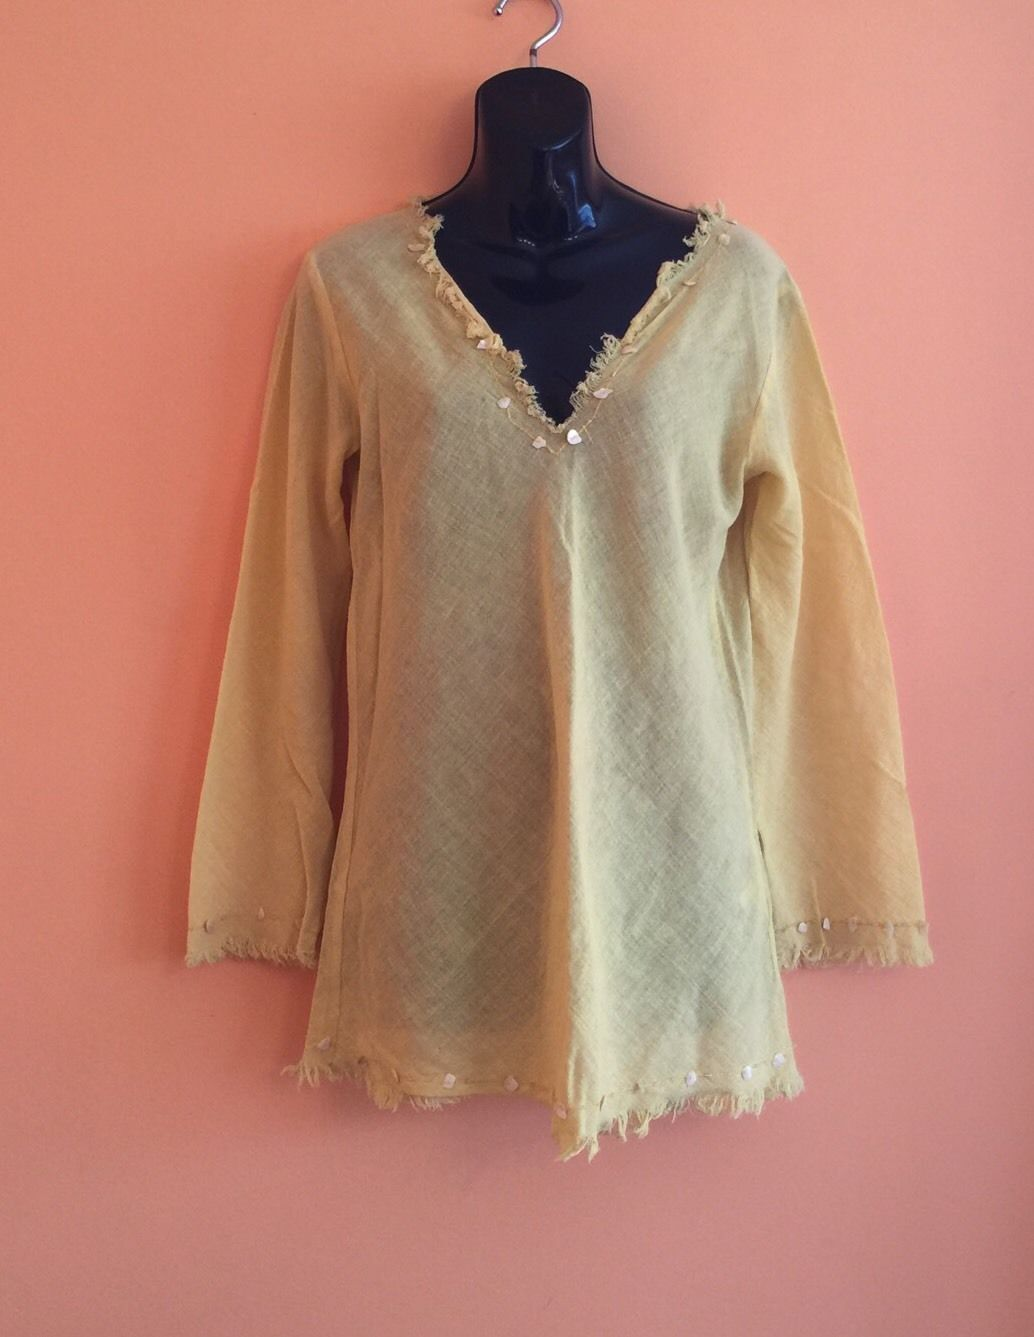 NWOT Valentino Jeans Yellow 100% Cotton Tunic Top w  Seashell Detail SZ IT 46